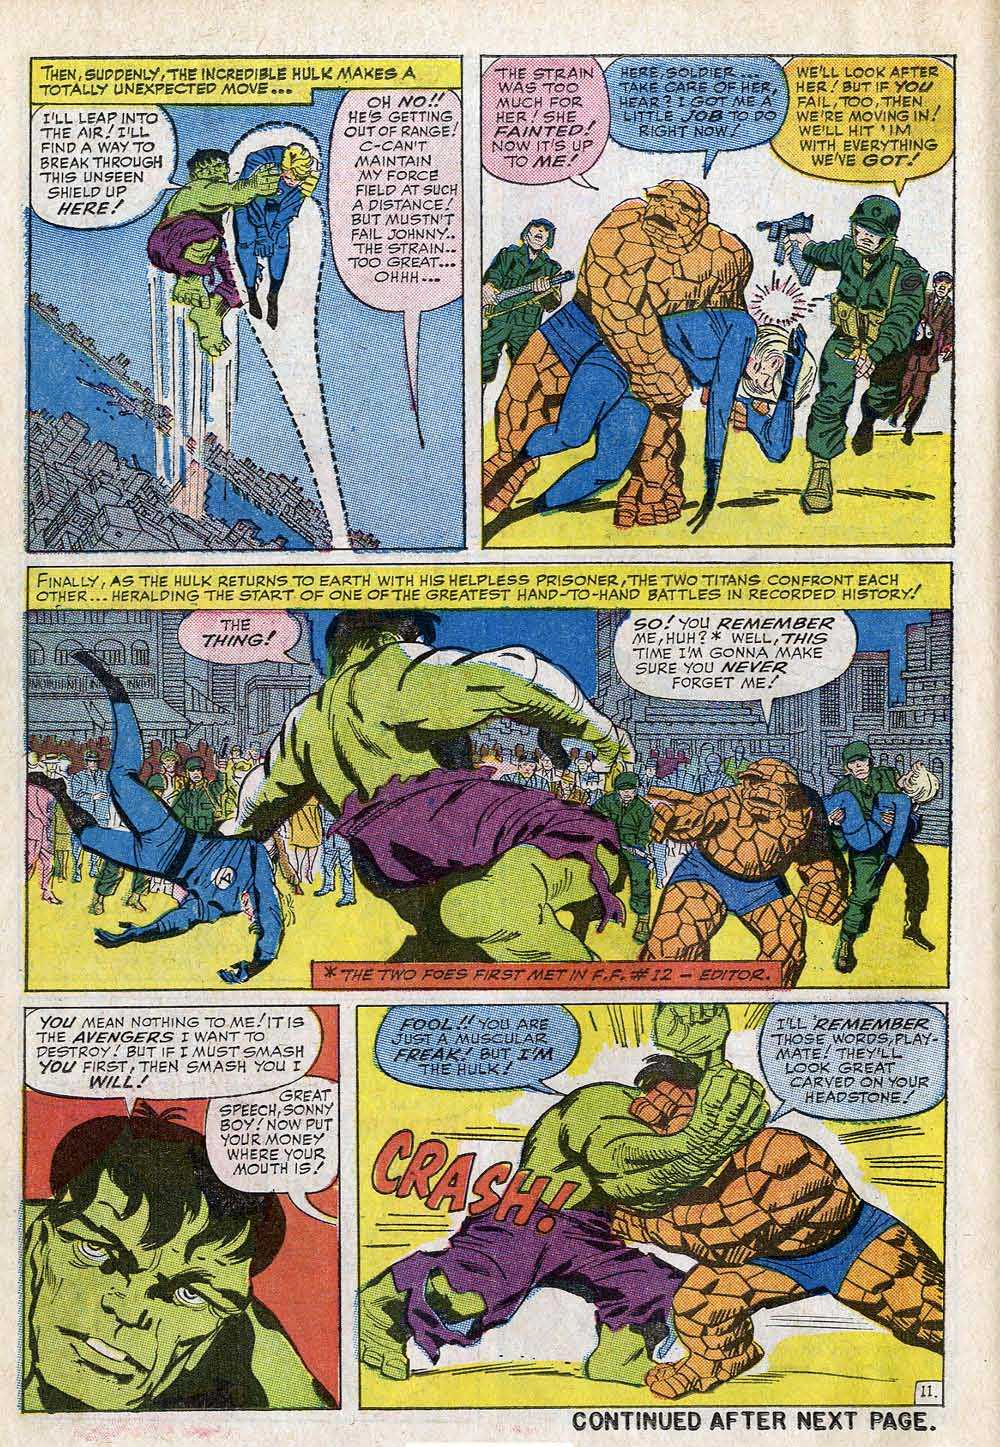 Lee & Kirby: THE INCREDIBLE HULK: He can fly! – The Tom Brevoort